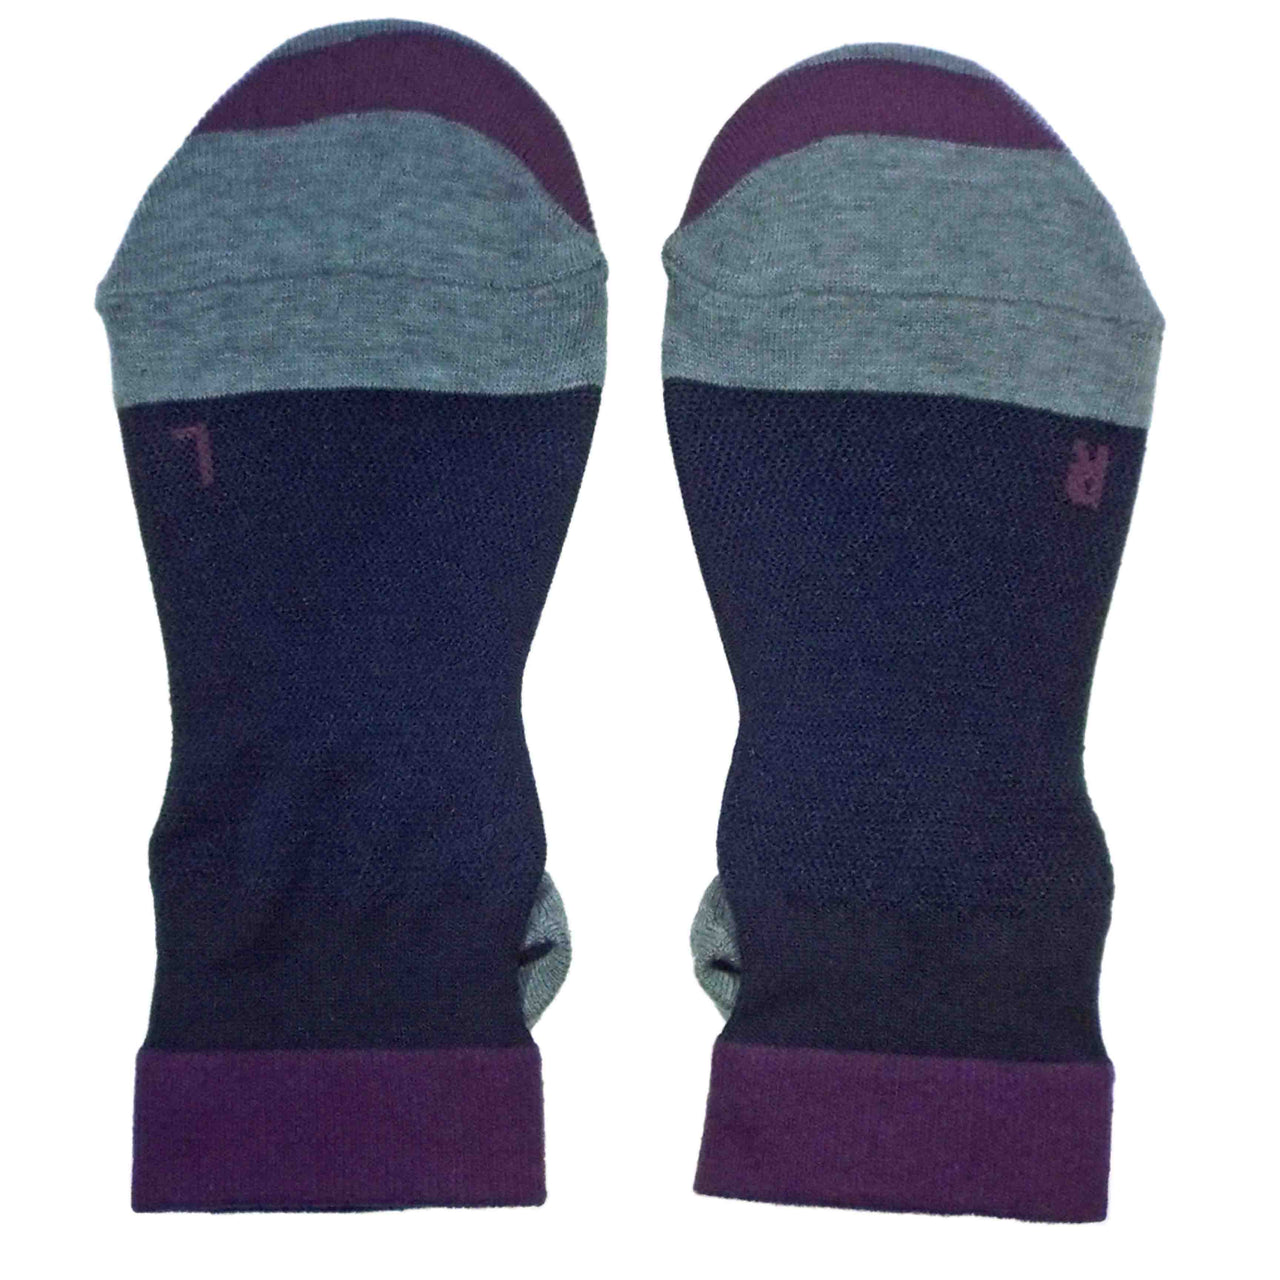 Arch Support Ankle Running Socks with Grips for Women | Black - CHERRYSTONE by MARKET TO JAPAN LLC